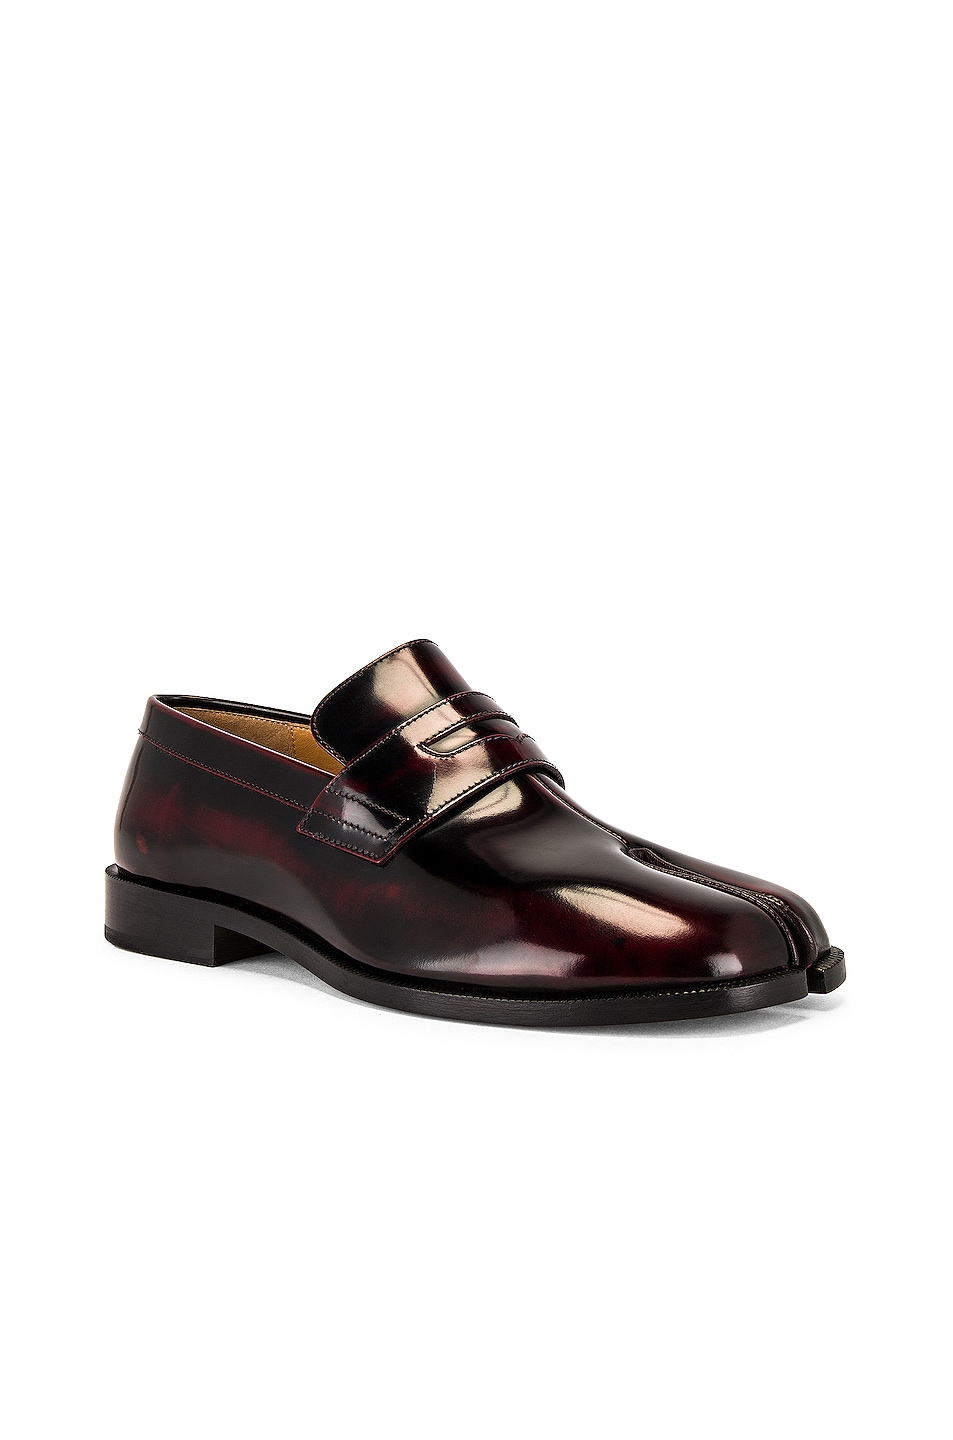 Image 1 of Maison Margiela Tabi Advocate Loafer in Cremisi Red